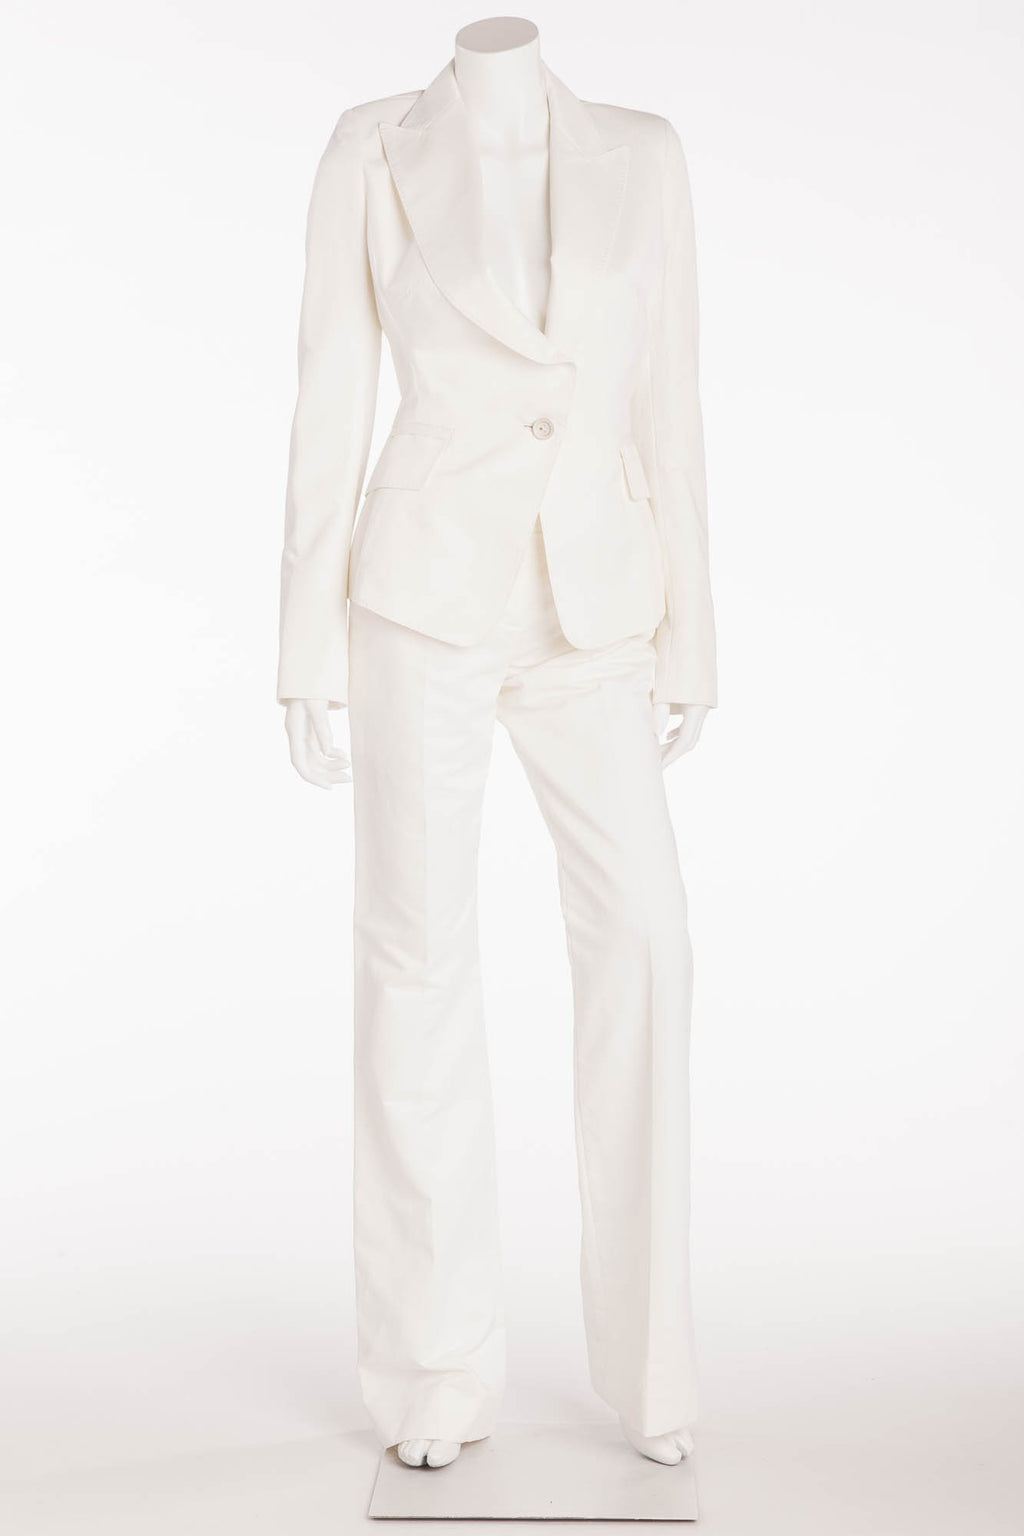 Kaufman Franco - Brand New 2pc White Blazer and Pants - IT 42